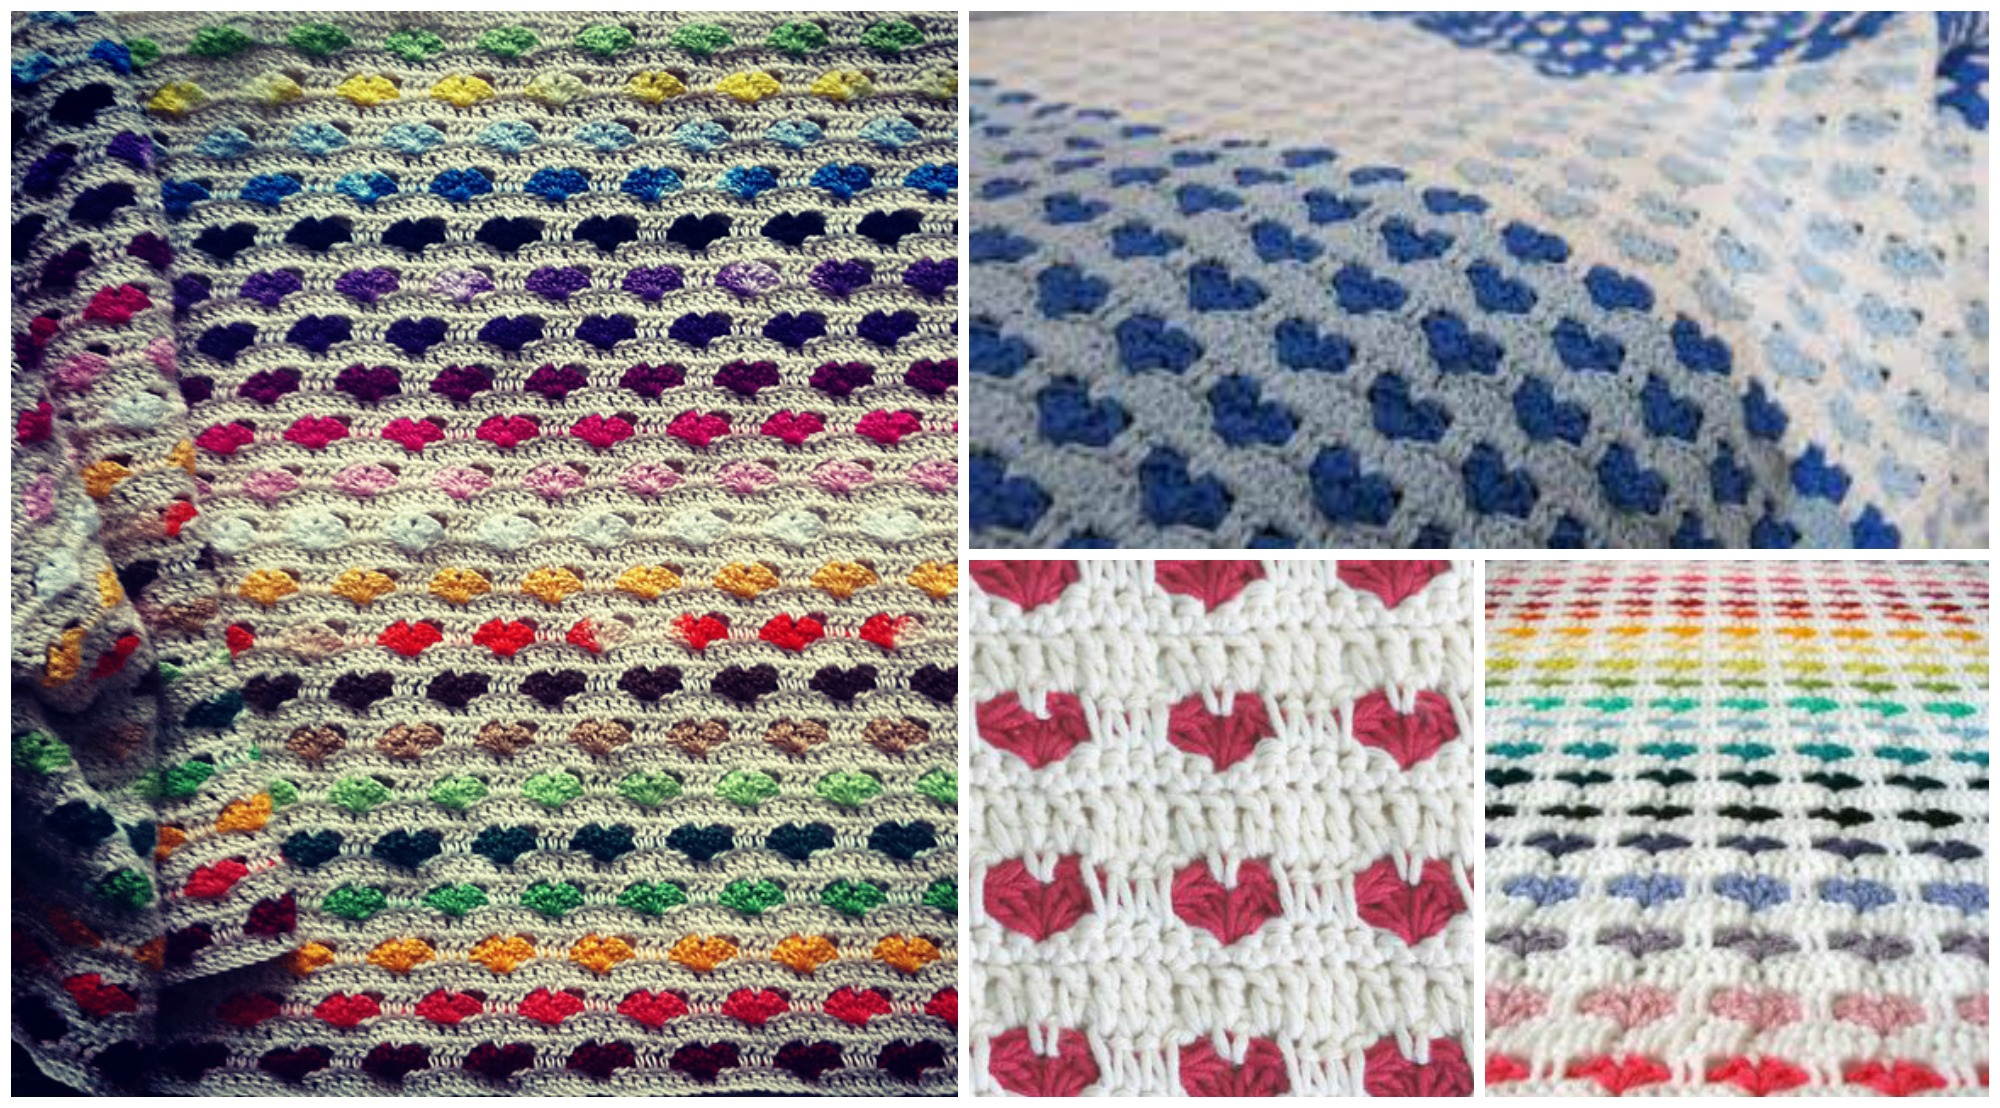 Crochet Heart Stitch Blanket - Video Tutorial - PRETTY IDEAS